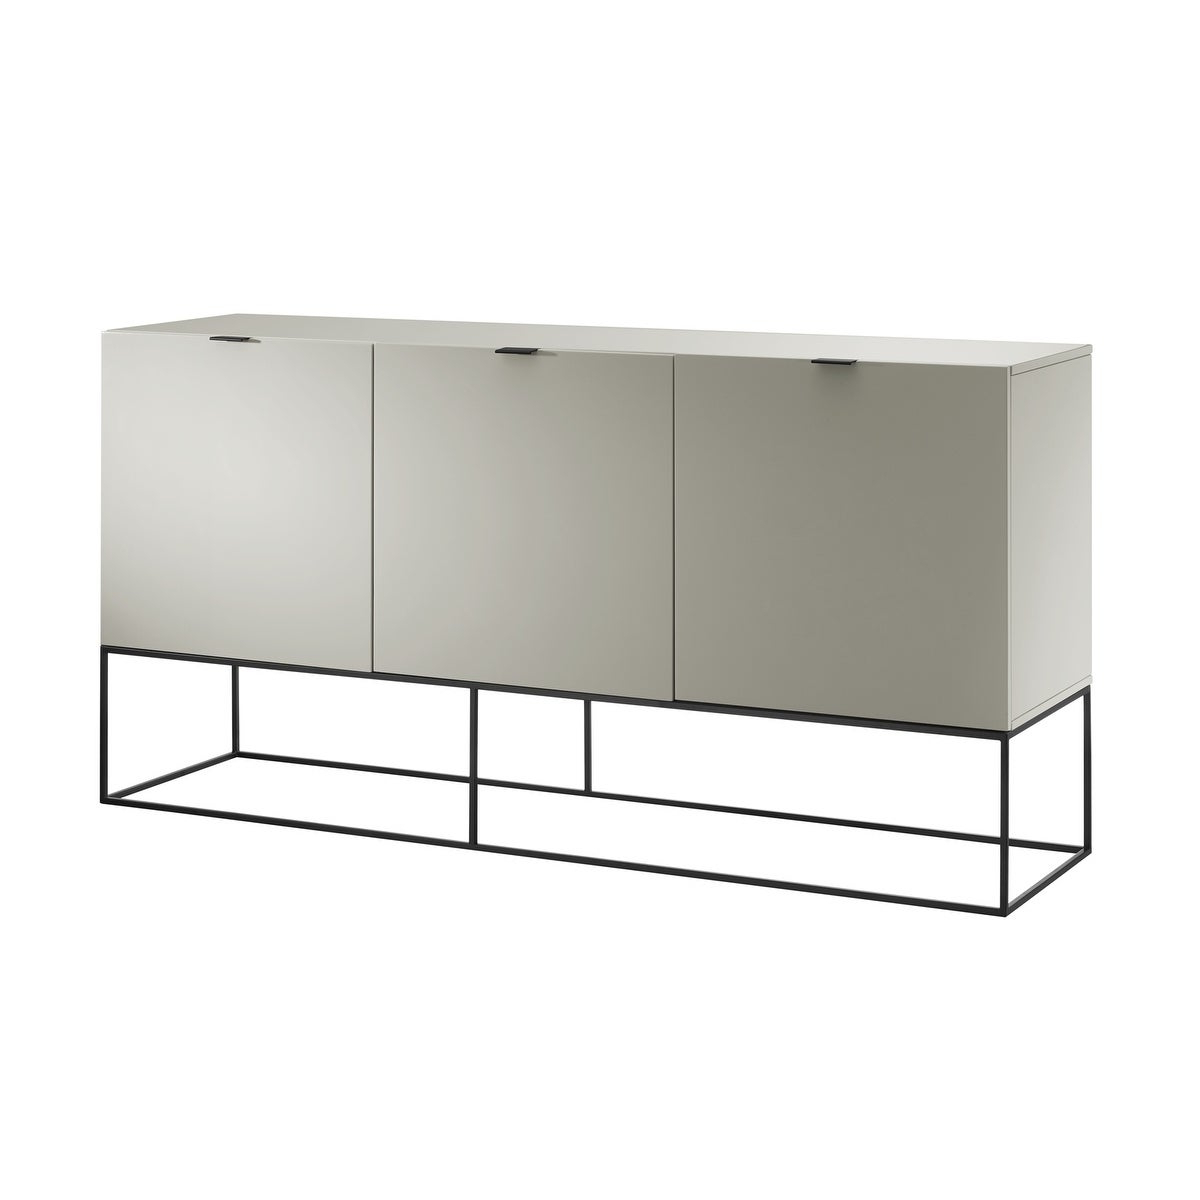 Vizzione High Gloss Light Gray Lacquer Buffetcasabianca Home Throughout White Wood And Chrome Metal High Gloss Buffets (View 18 of 20)